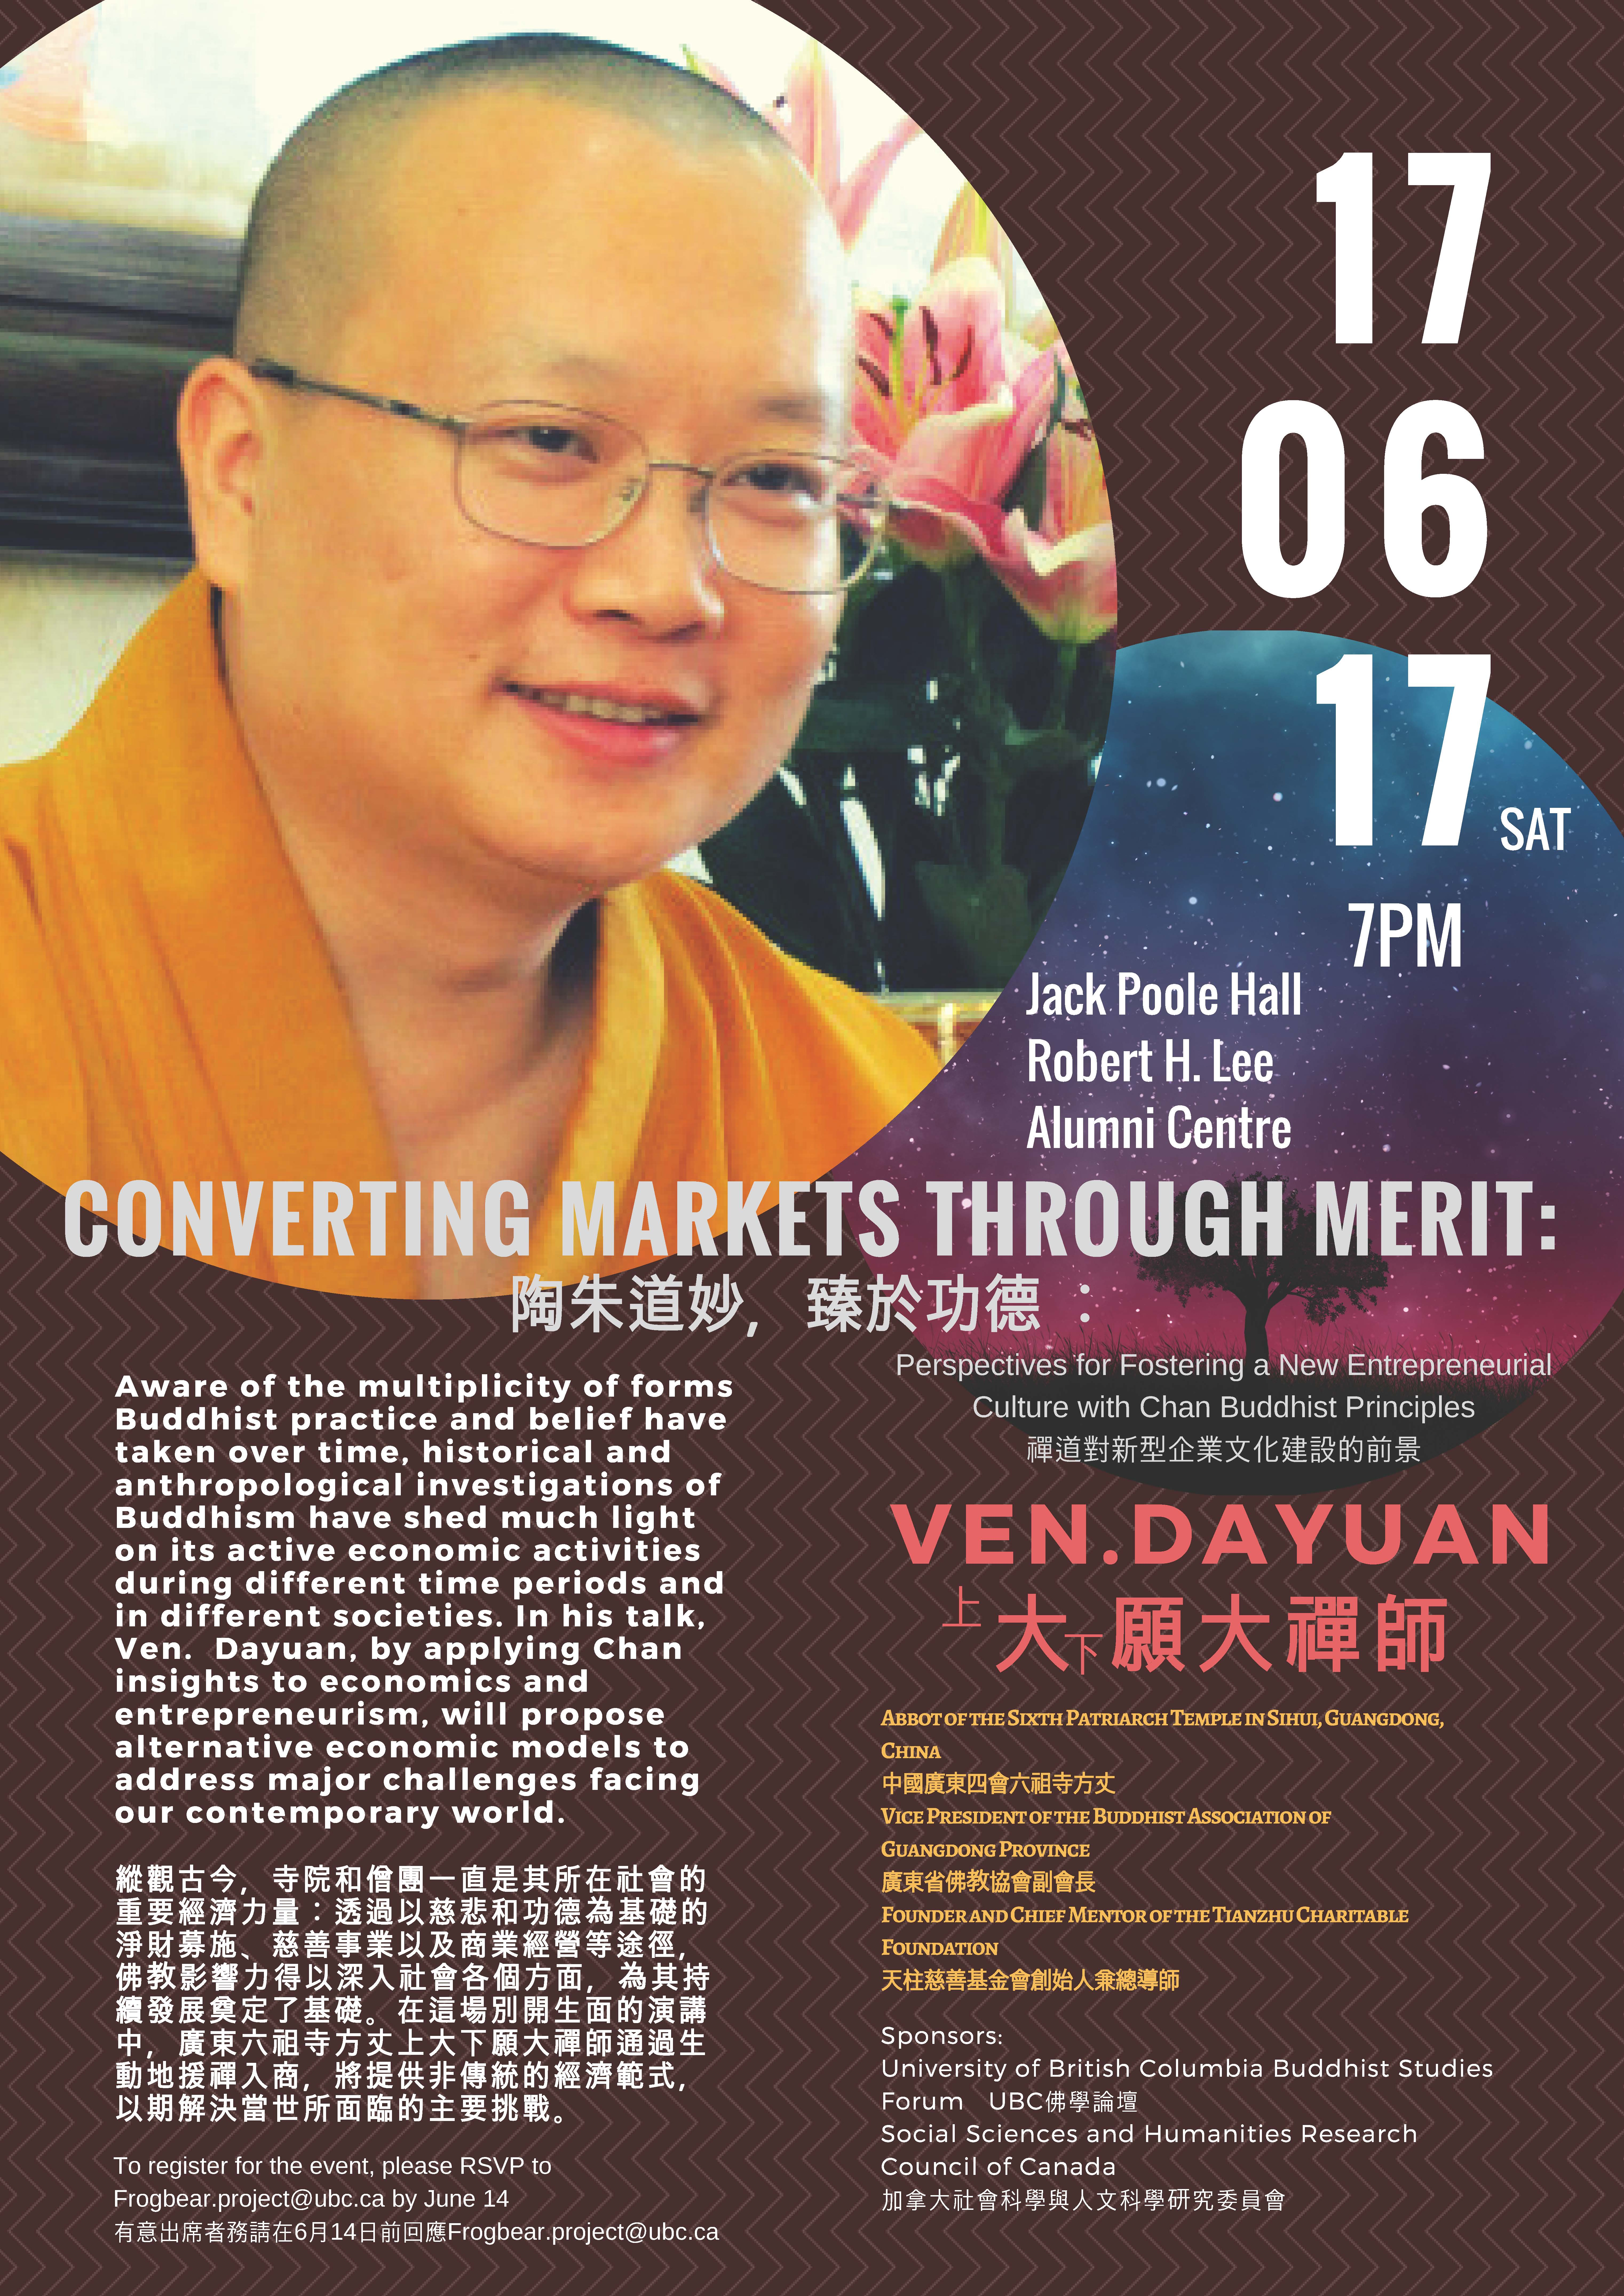 Converting Markets through Merit: Perspectives for Fostering a New Entrepreneurial Culture with Chan Buddhist Principles